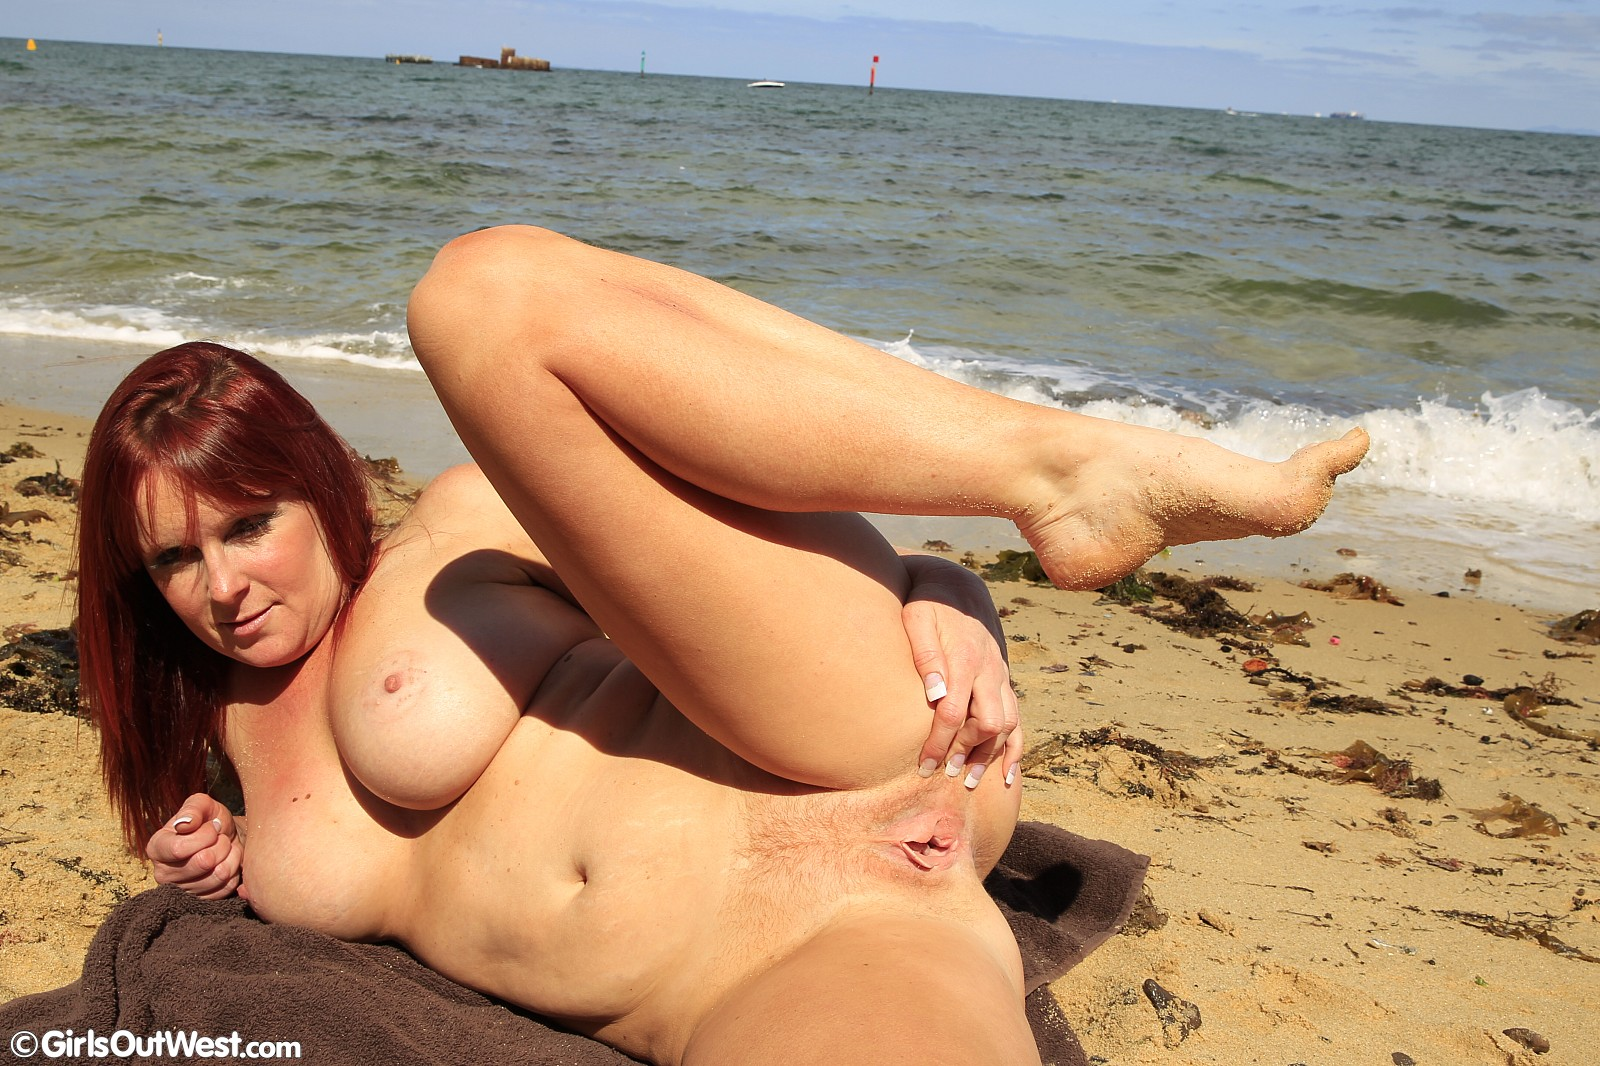 girls-out-west-busty-amateur-milf-posing-at-the-beach-14 | girls out